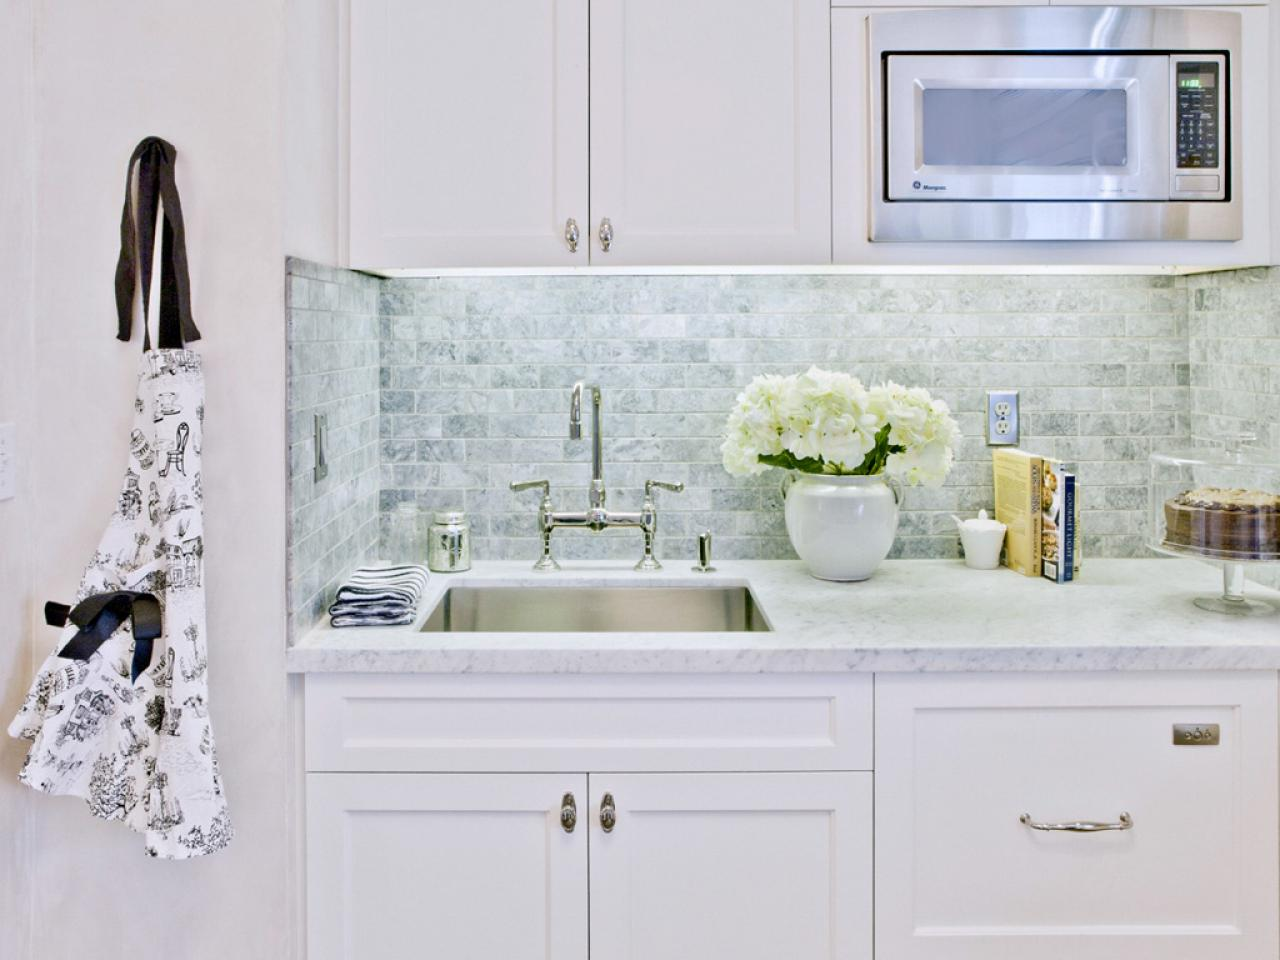 Subway Tile Backsplash Patterns Simple Subway Tile Backsplashes Pictures Ideas & Tips From Hgtv  Hgtv Decorating Design